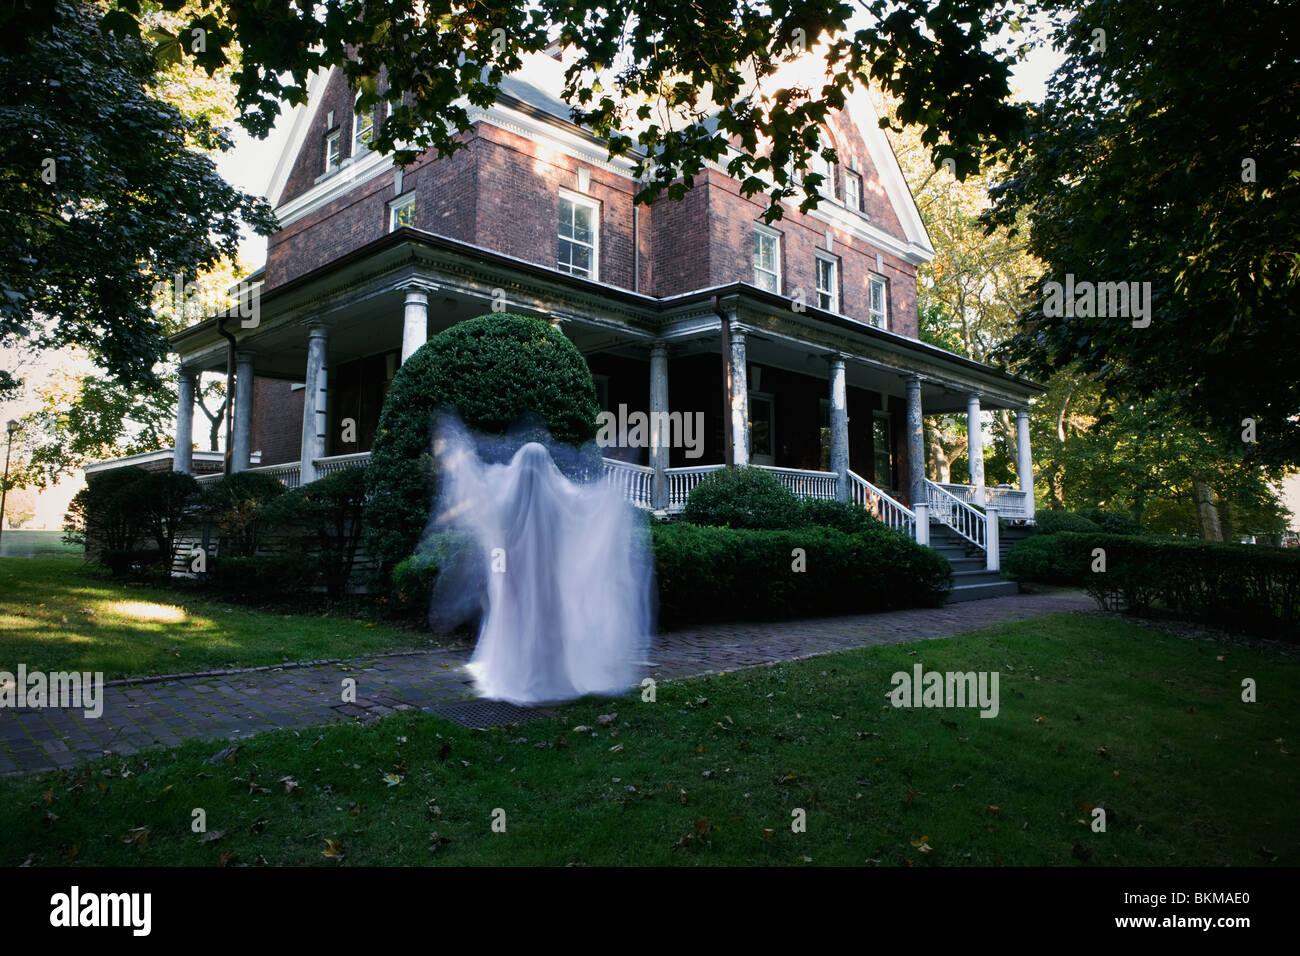 ghostly figure in front of house late afternoon Halloween scary sheet - Stock Image